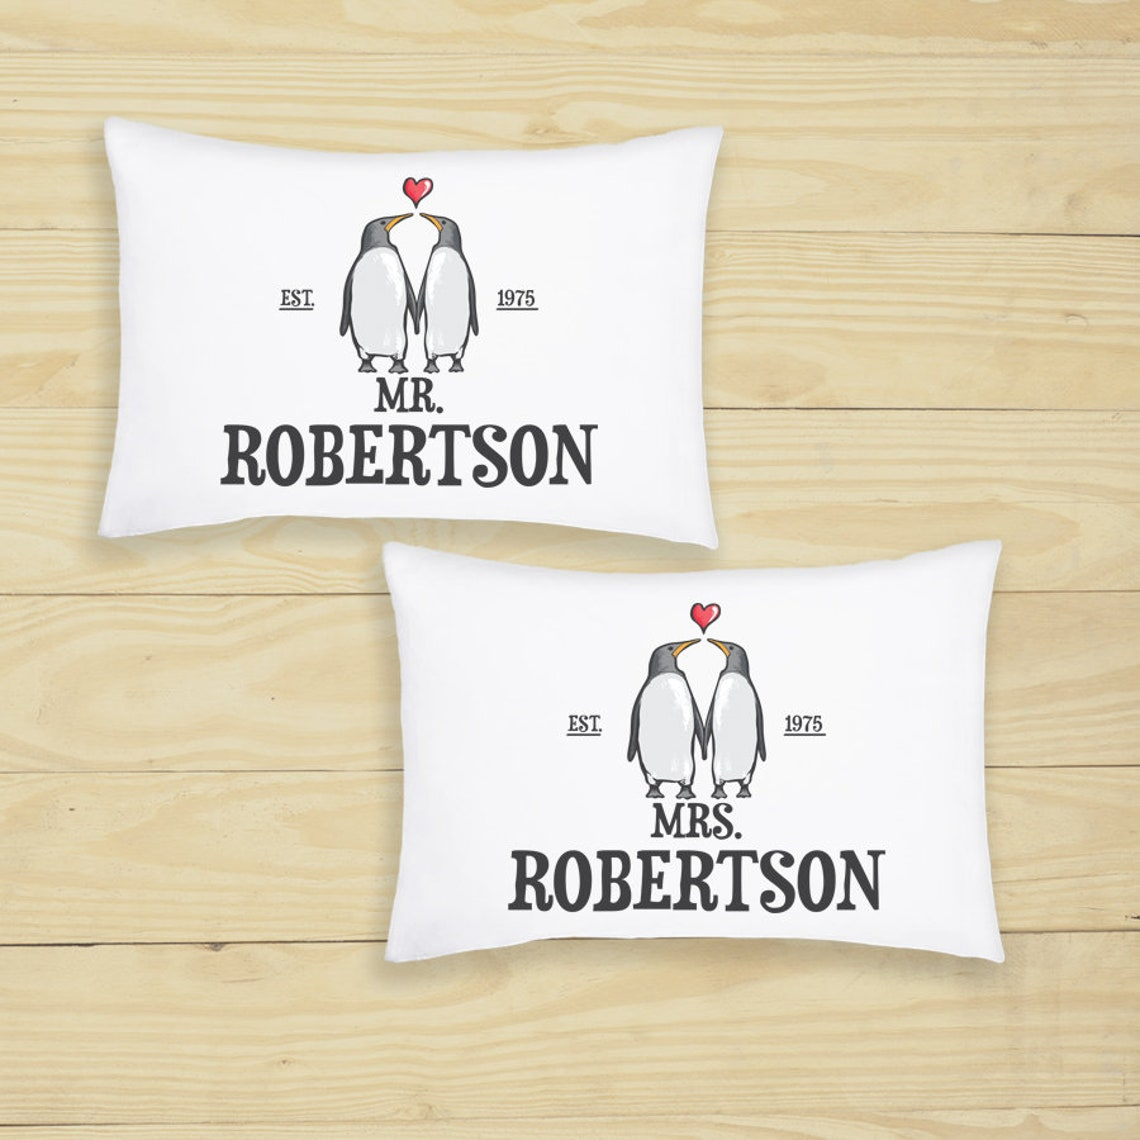 Personalised pillow covers